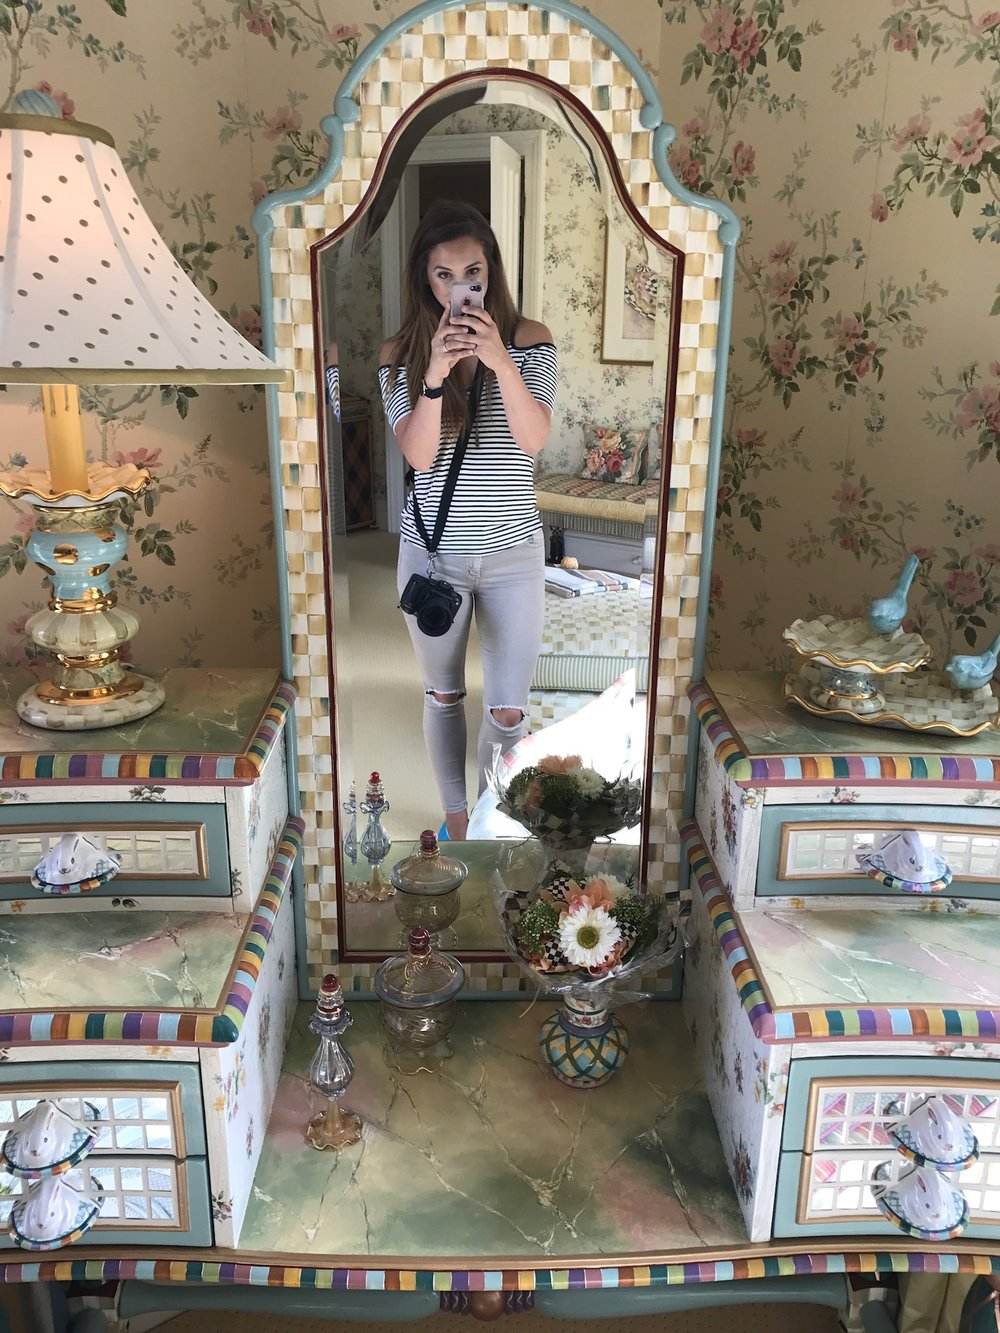 A must have selfie in this incredible MacKenzie-Childs vanity!